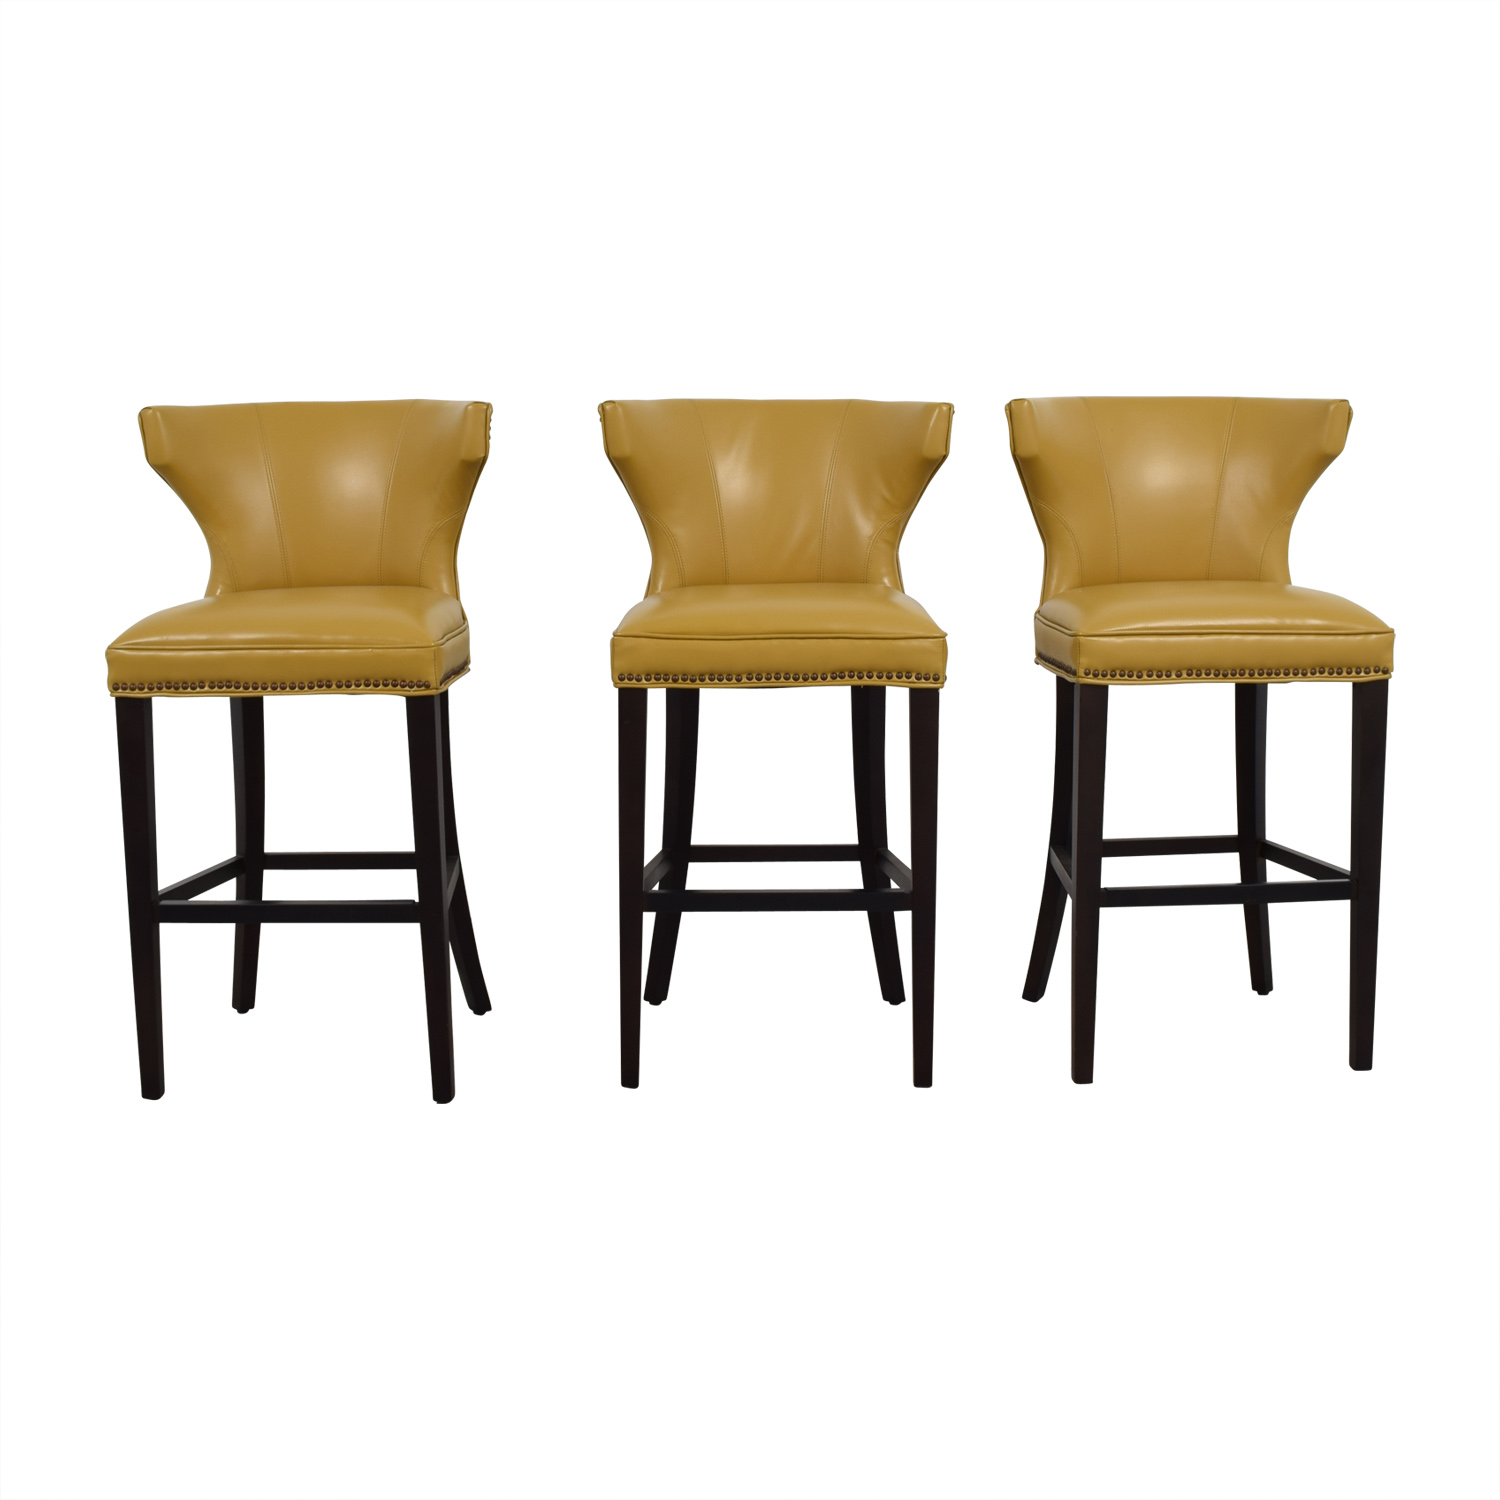 72 Off Grandin Road Grandin Road Mustard Yellow Bar Stools Chairs